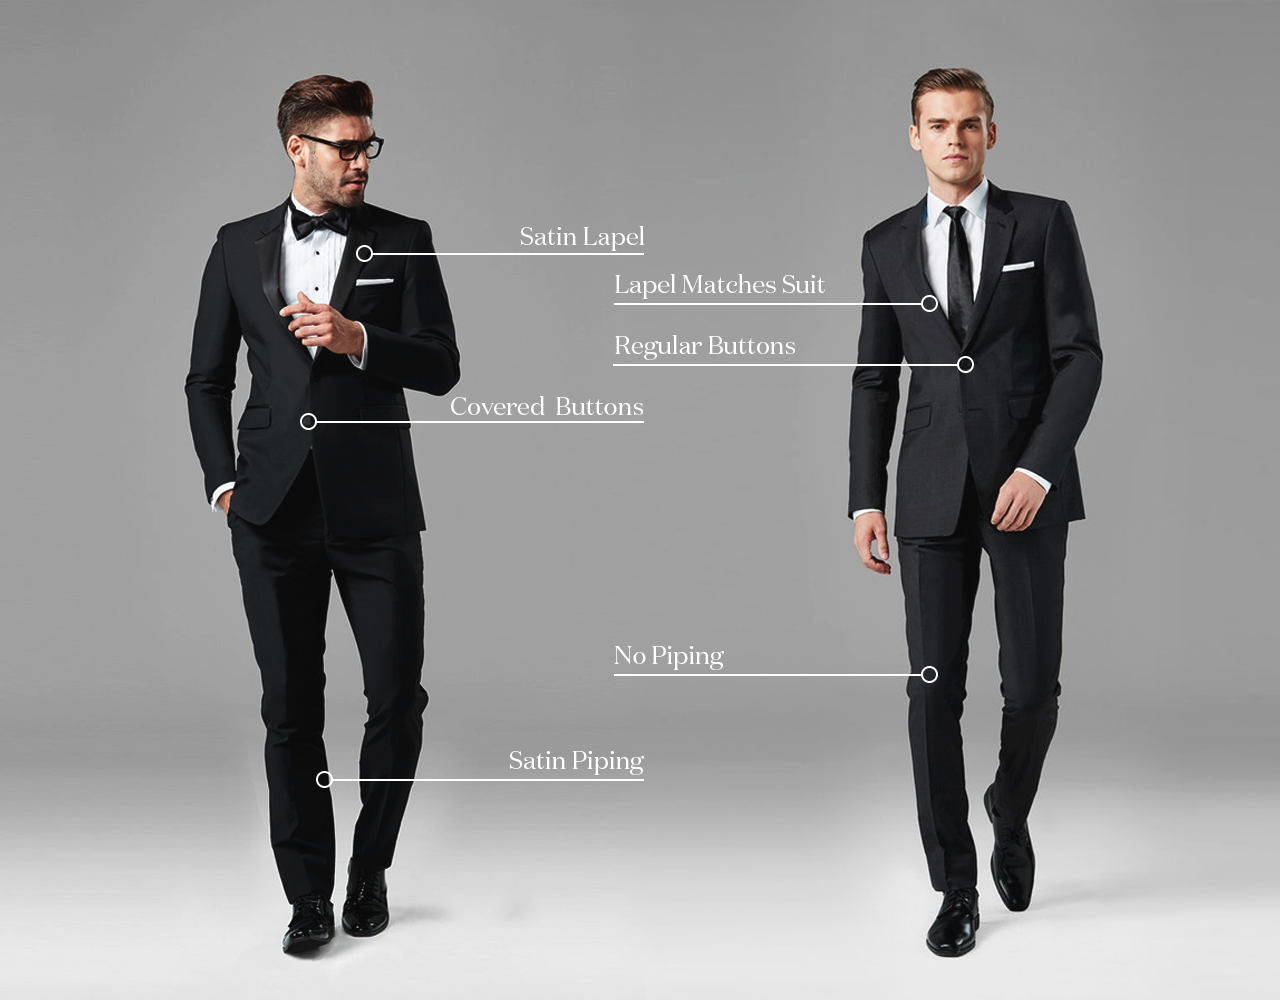 Wedding Attire For Men.Four Things You Need To Know About Suits A Practical Wedding